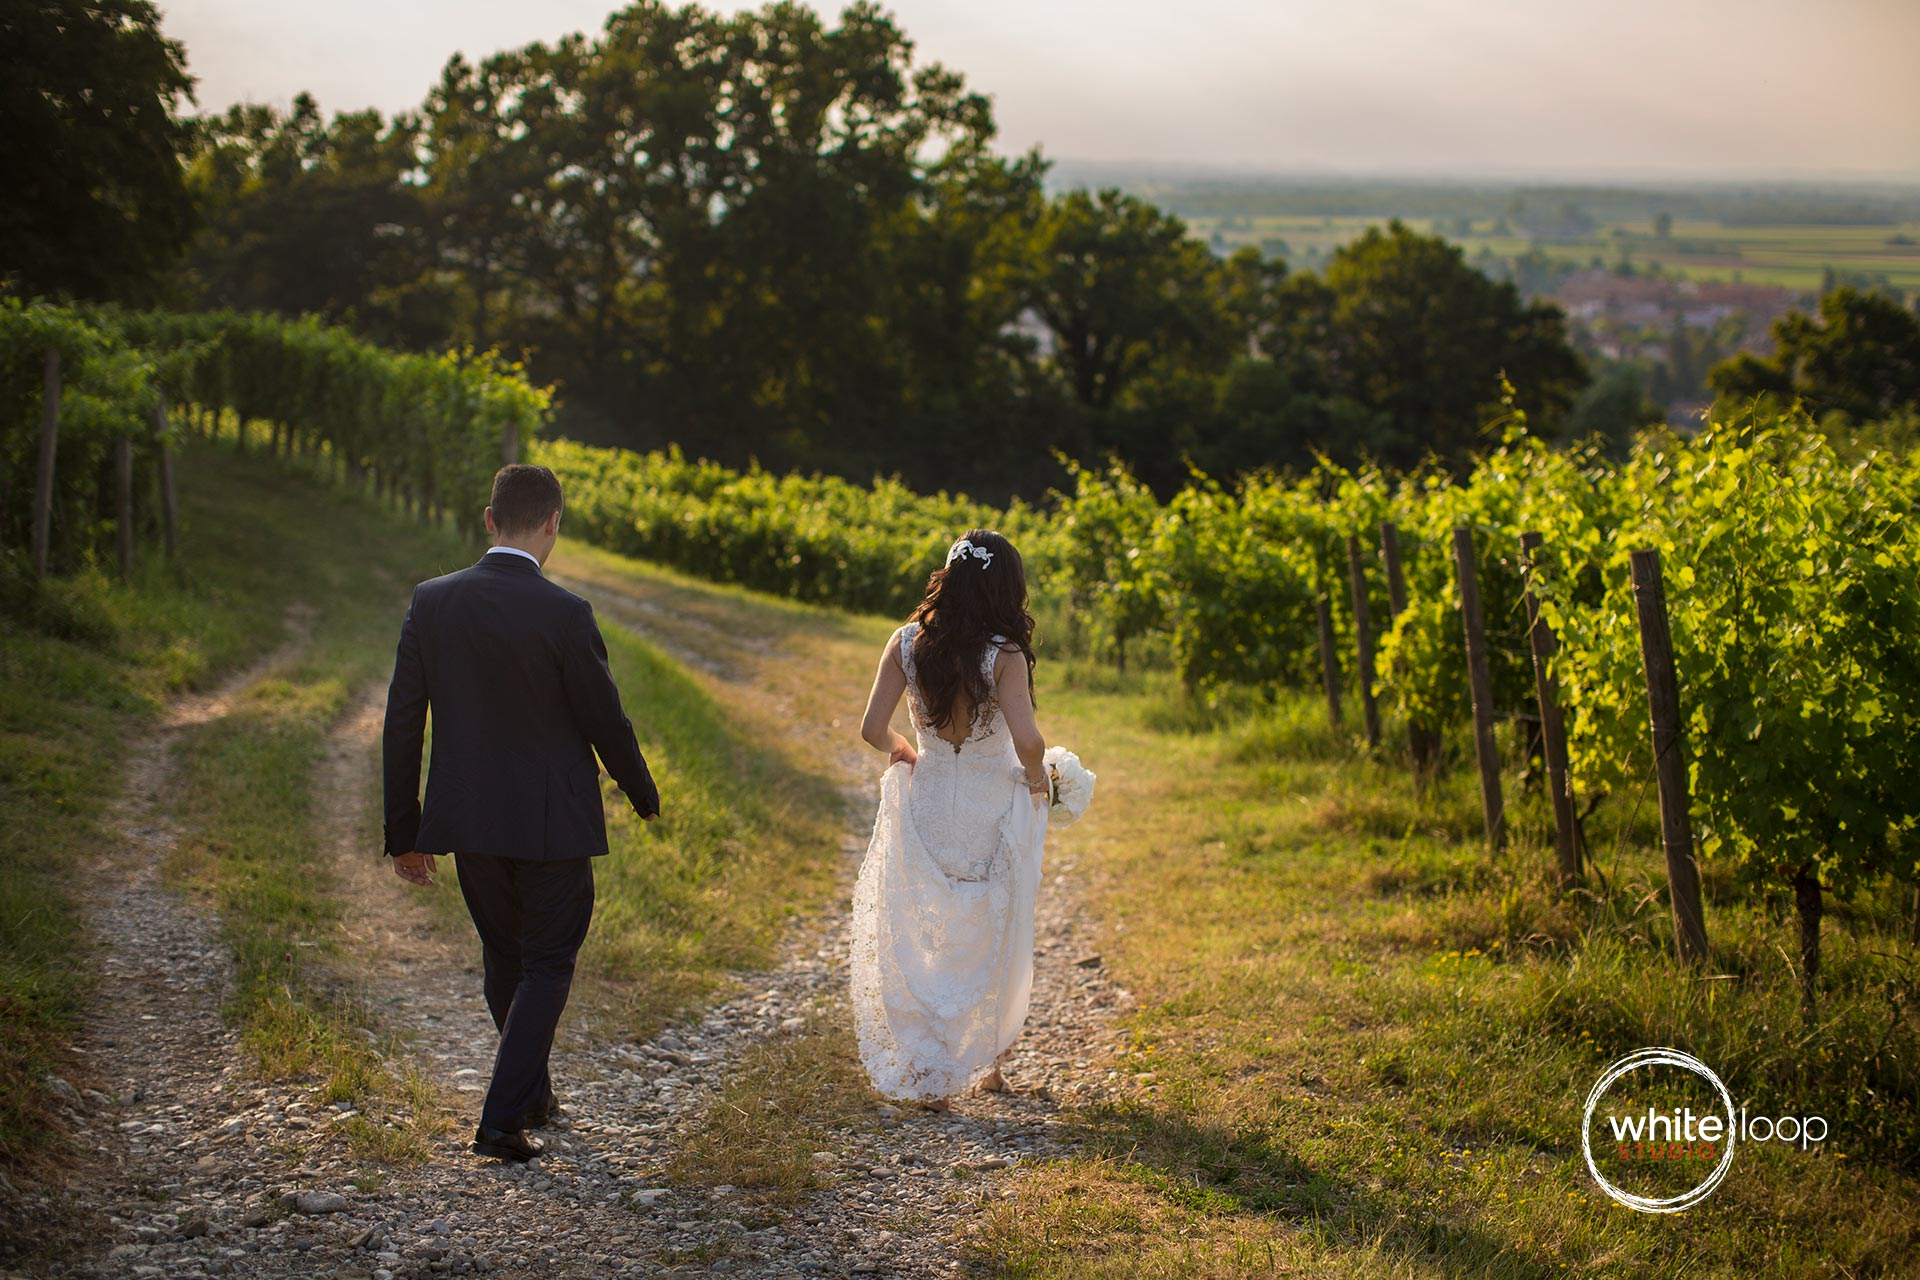 The bride and groom are walking through grapes fields, while the sunset is painting warm colours in the sky.